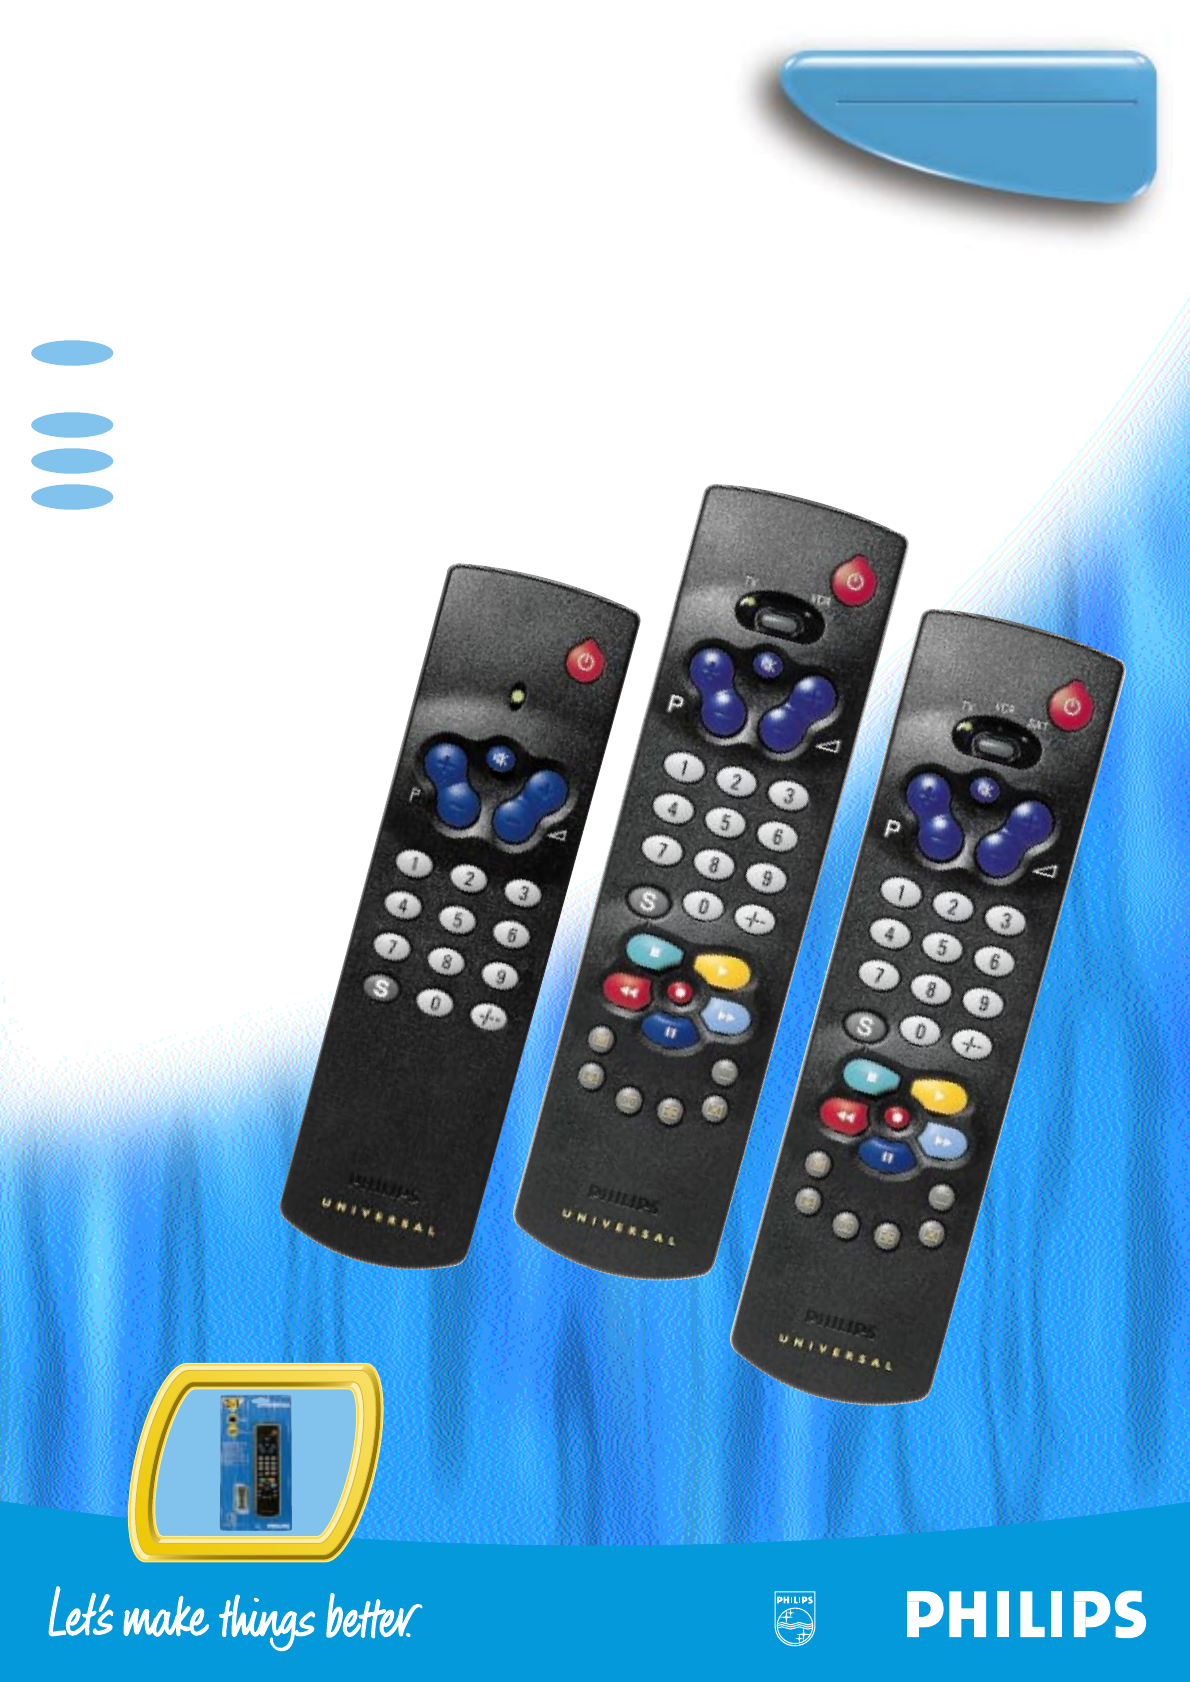 user guide for philips universal remote philips universal remote sbc ru430 user guide Philips Universal Remote Codes Philips Universal Remote CL034 Manual